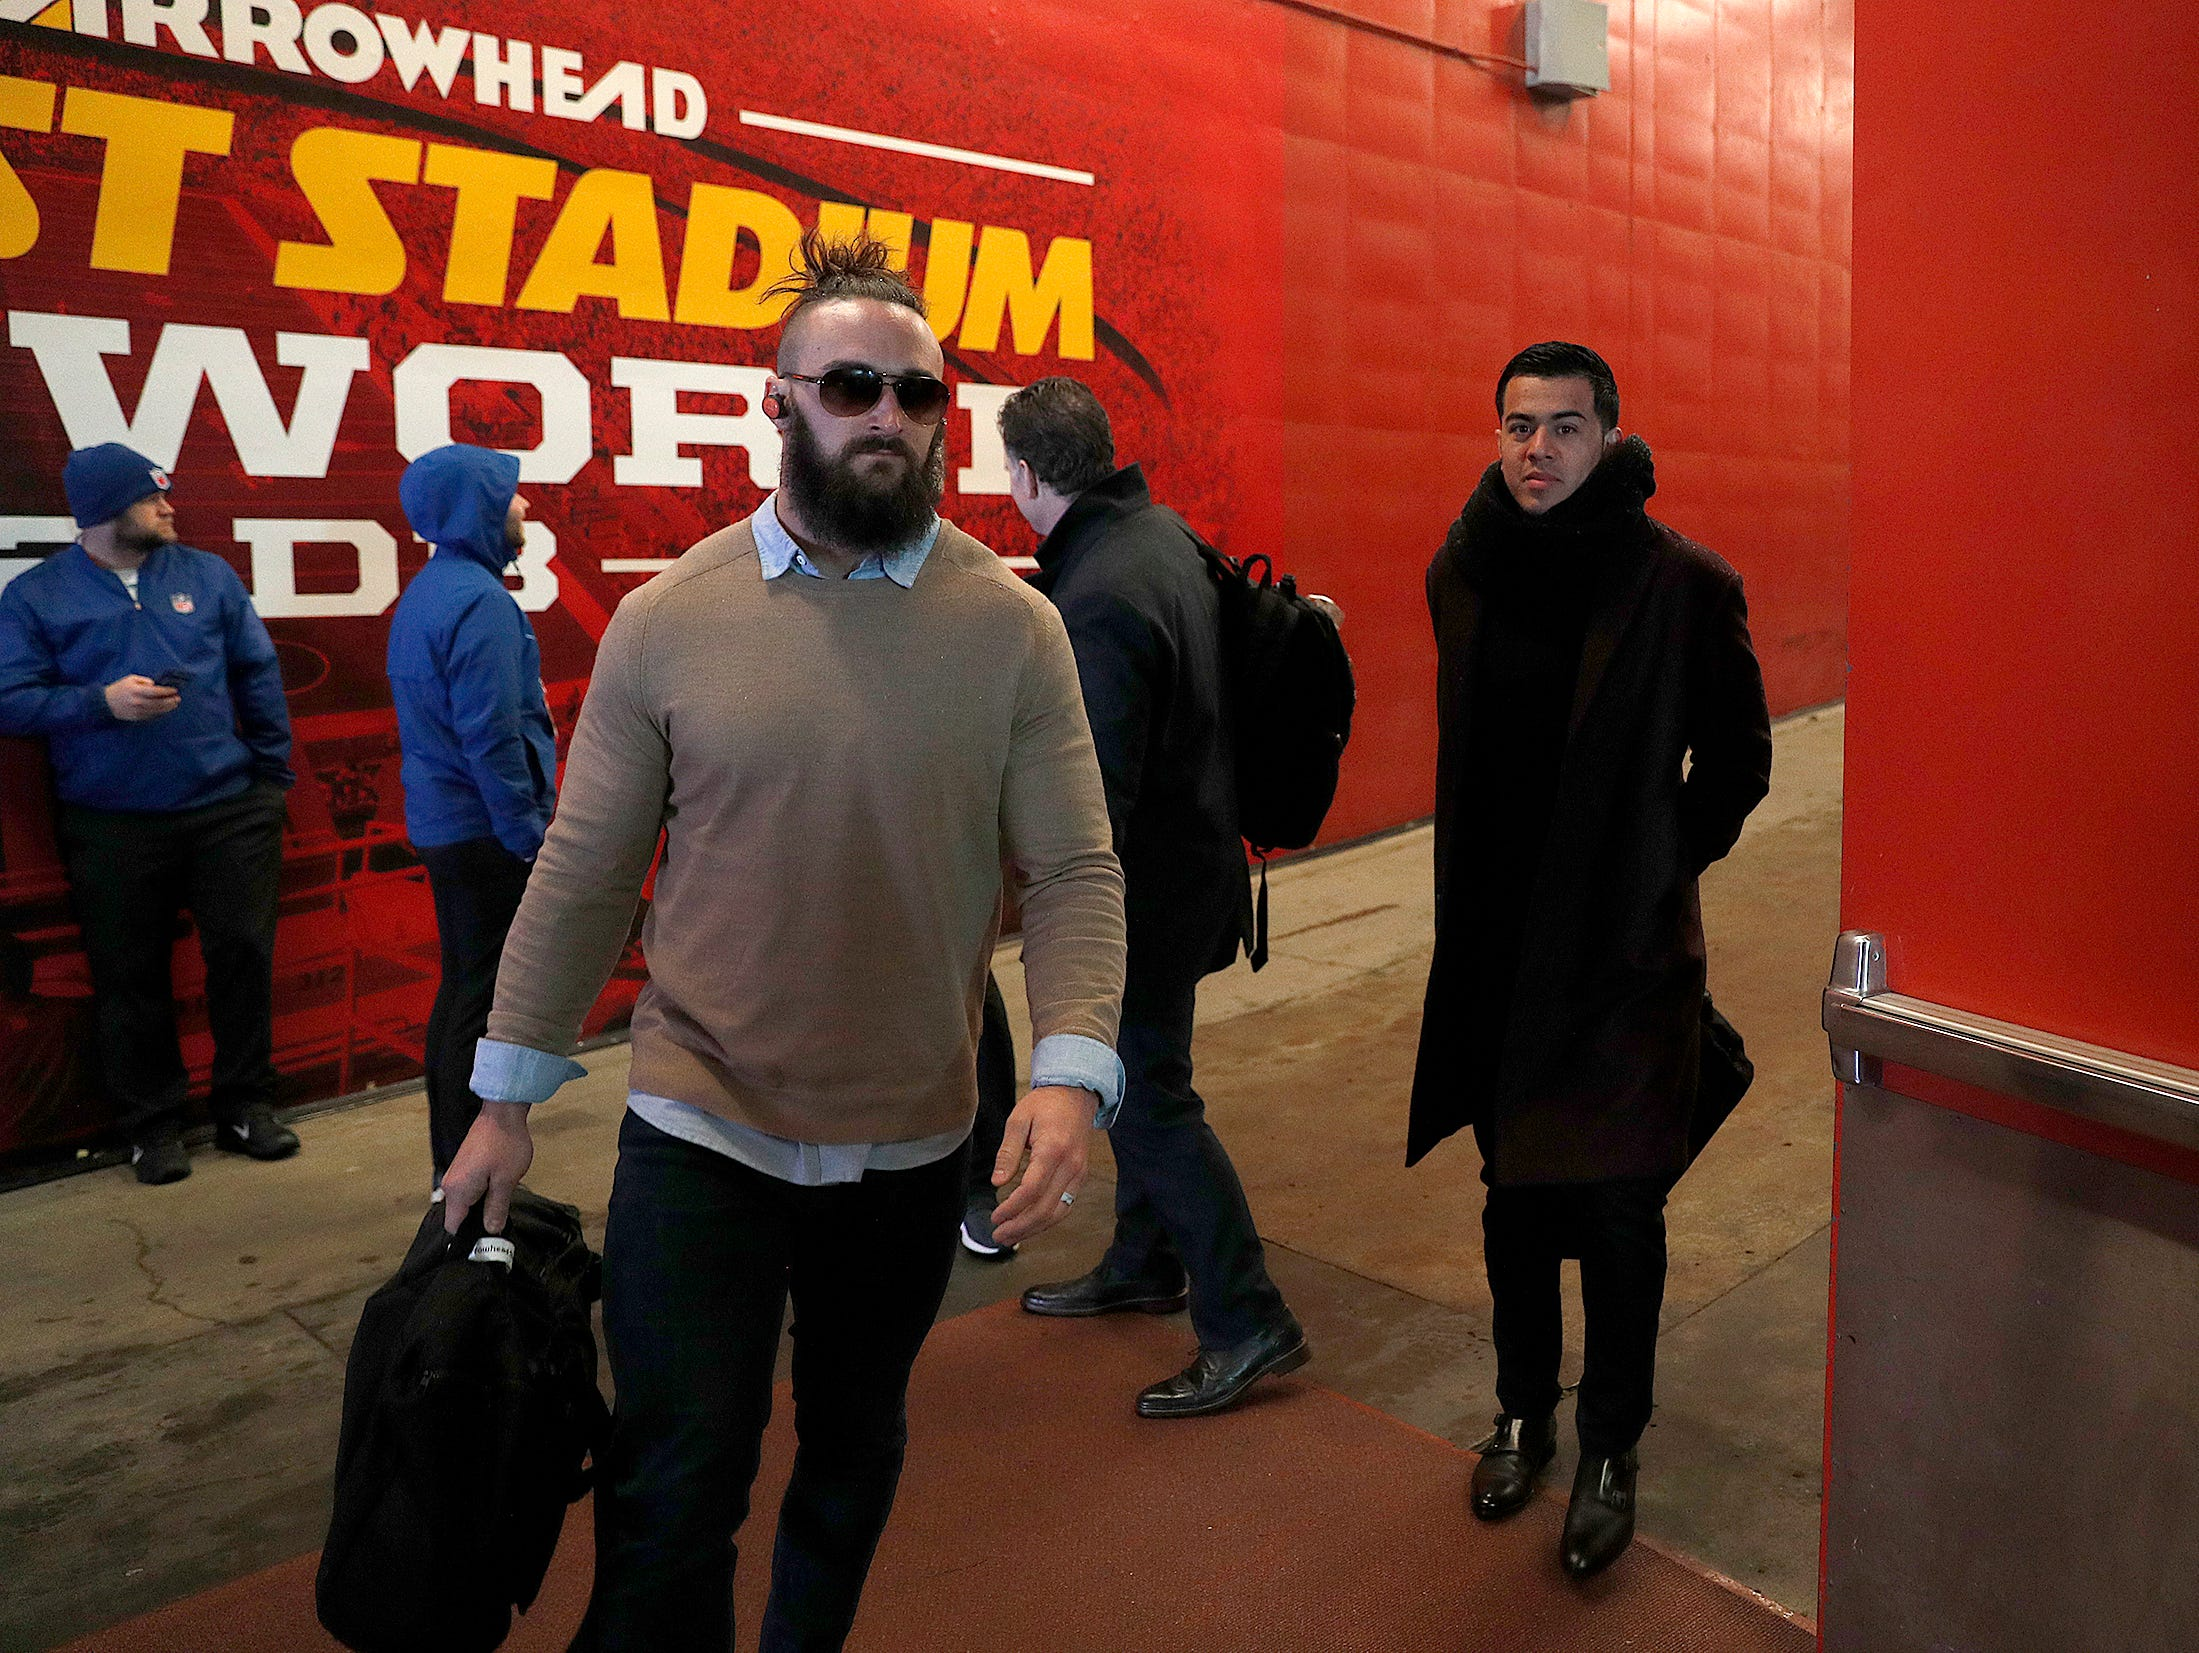 Indianapolis Colts long snapper Luke Rhodes (46) and s punter Rigoberto Sanchez (2) and the Indianapolis Colts arrive for their game against the Kansas City Chiefs at Arrowhead Stadium in Kansas City, MO., on Saturday, Jan. 12, 2019.